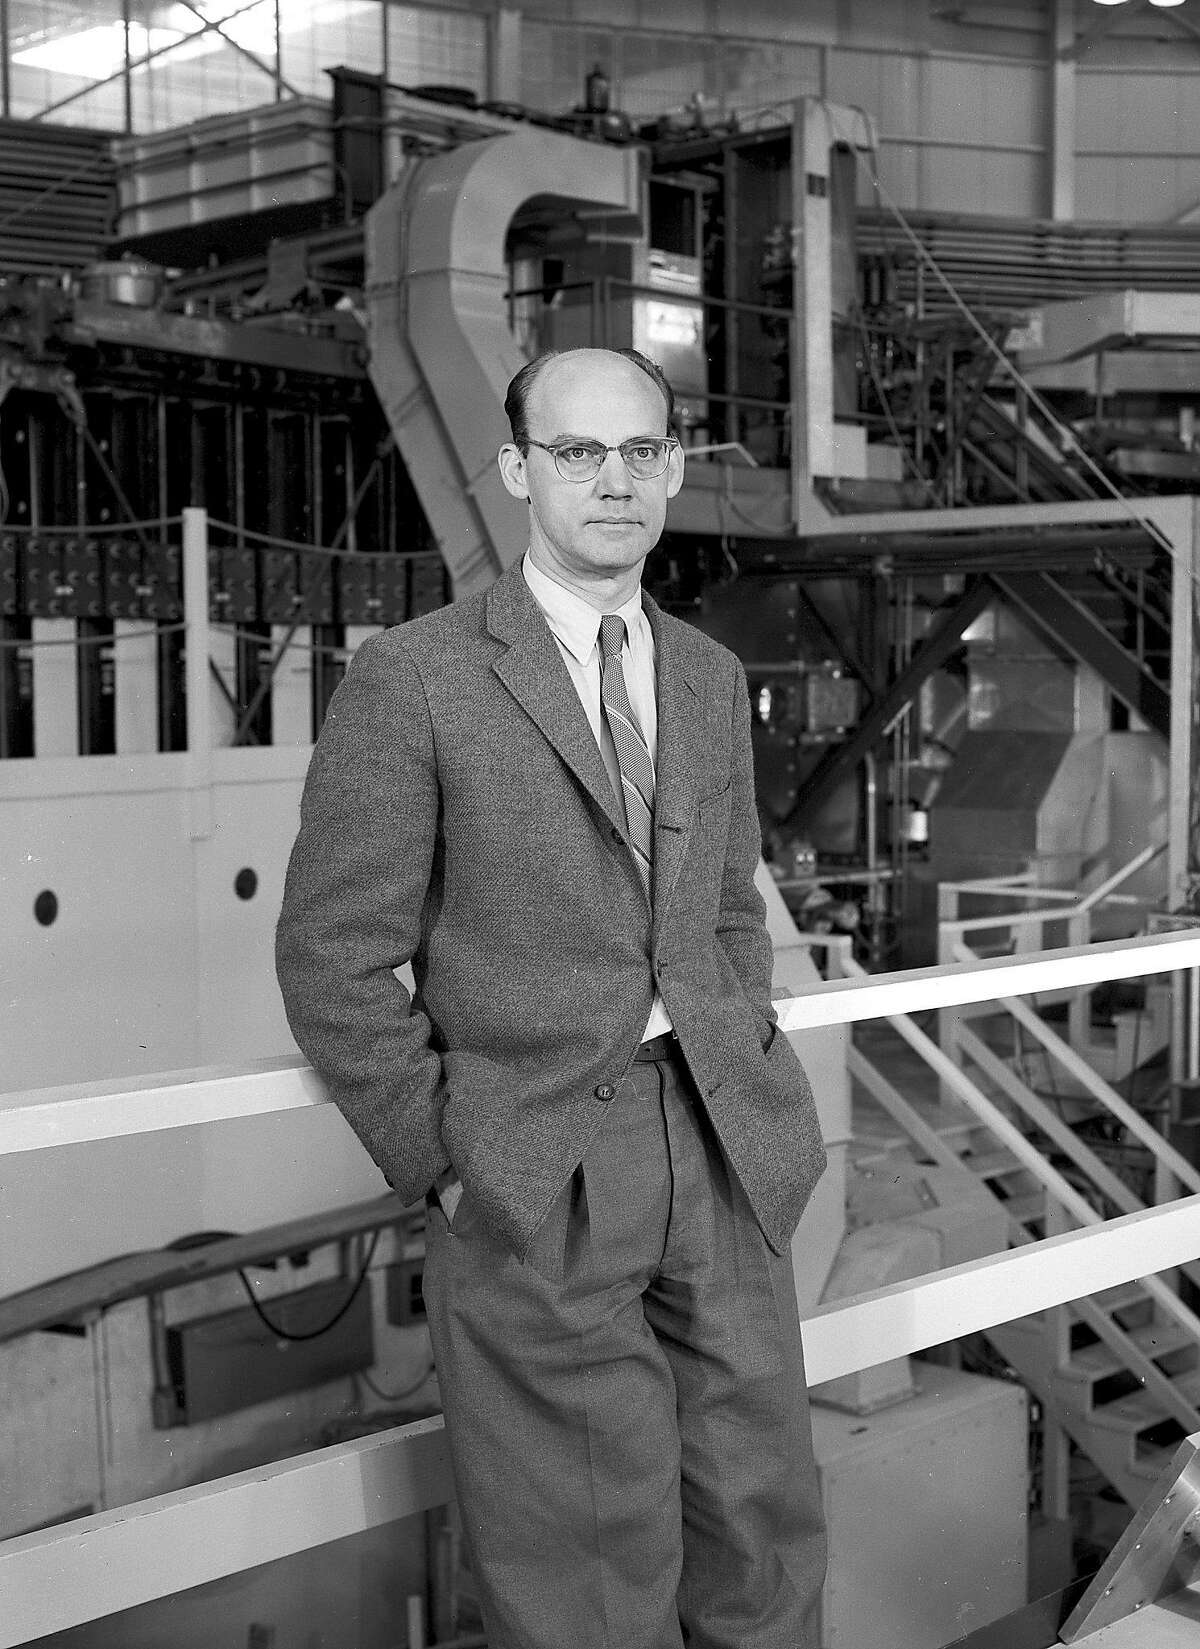 This 1957 photo released by the Lawrence Berkeley National Laboratory shows Edward Joseph Lofgren, a pioneering physicist at the Lawrence Berkeley National Laboratory. Lofgren, who led the development, construction and operation of the Bevatron, an early particle accelerator at the lab, died on Sept. 6, 2016. He was 102. (Lawrence Berkeley National Laboratory via AP)